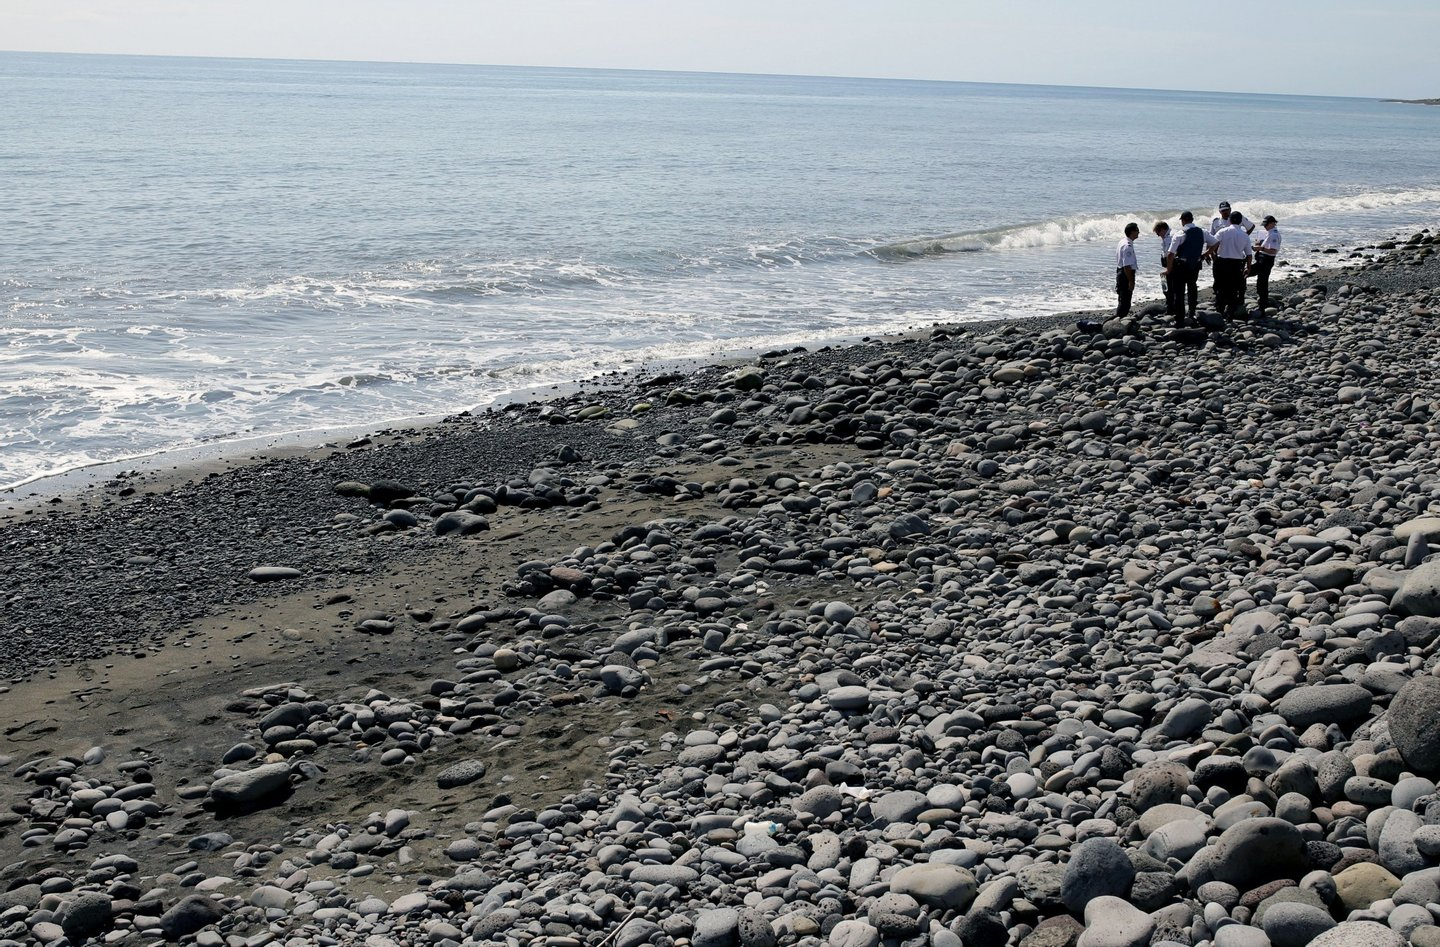 Police officers inspect metallic debris found on a beach in Saint-Denis on the French Reunion Island in the Indian Ocean on August 2, 2015, close to where a Boeing 777 wing part believed to belong to missing flight MH370 washed up last week. A piece of metal was found on La Reunion island, where a Boeing 777 wing part believed to belong to missing flight MH370 washed up last week, said a source close to the investigation. Investigators on the Indian Ocean island took the debris into evidence as part of their probe into the fate of Malaysia Airlines flight MH370, however nothing indicated the piece of metal came from an airplane, the source said. AFP PHOTO / RICHARD BOUHET (Photo credit should read RICHARD BOUHET/AFP/Getty Images)